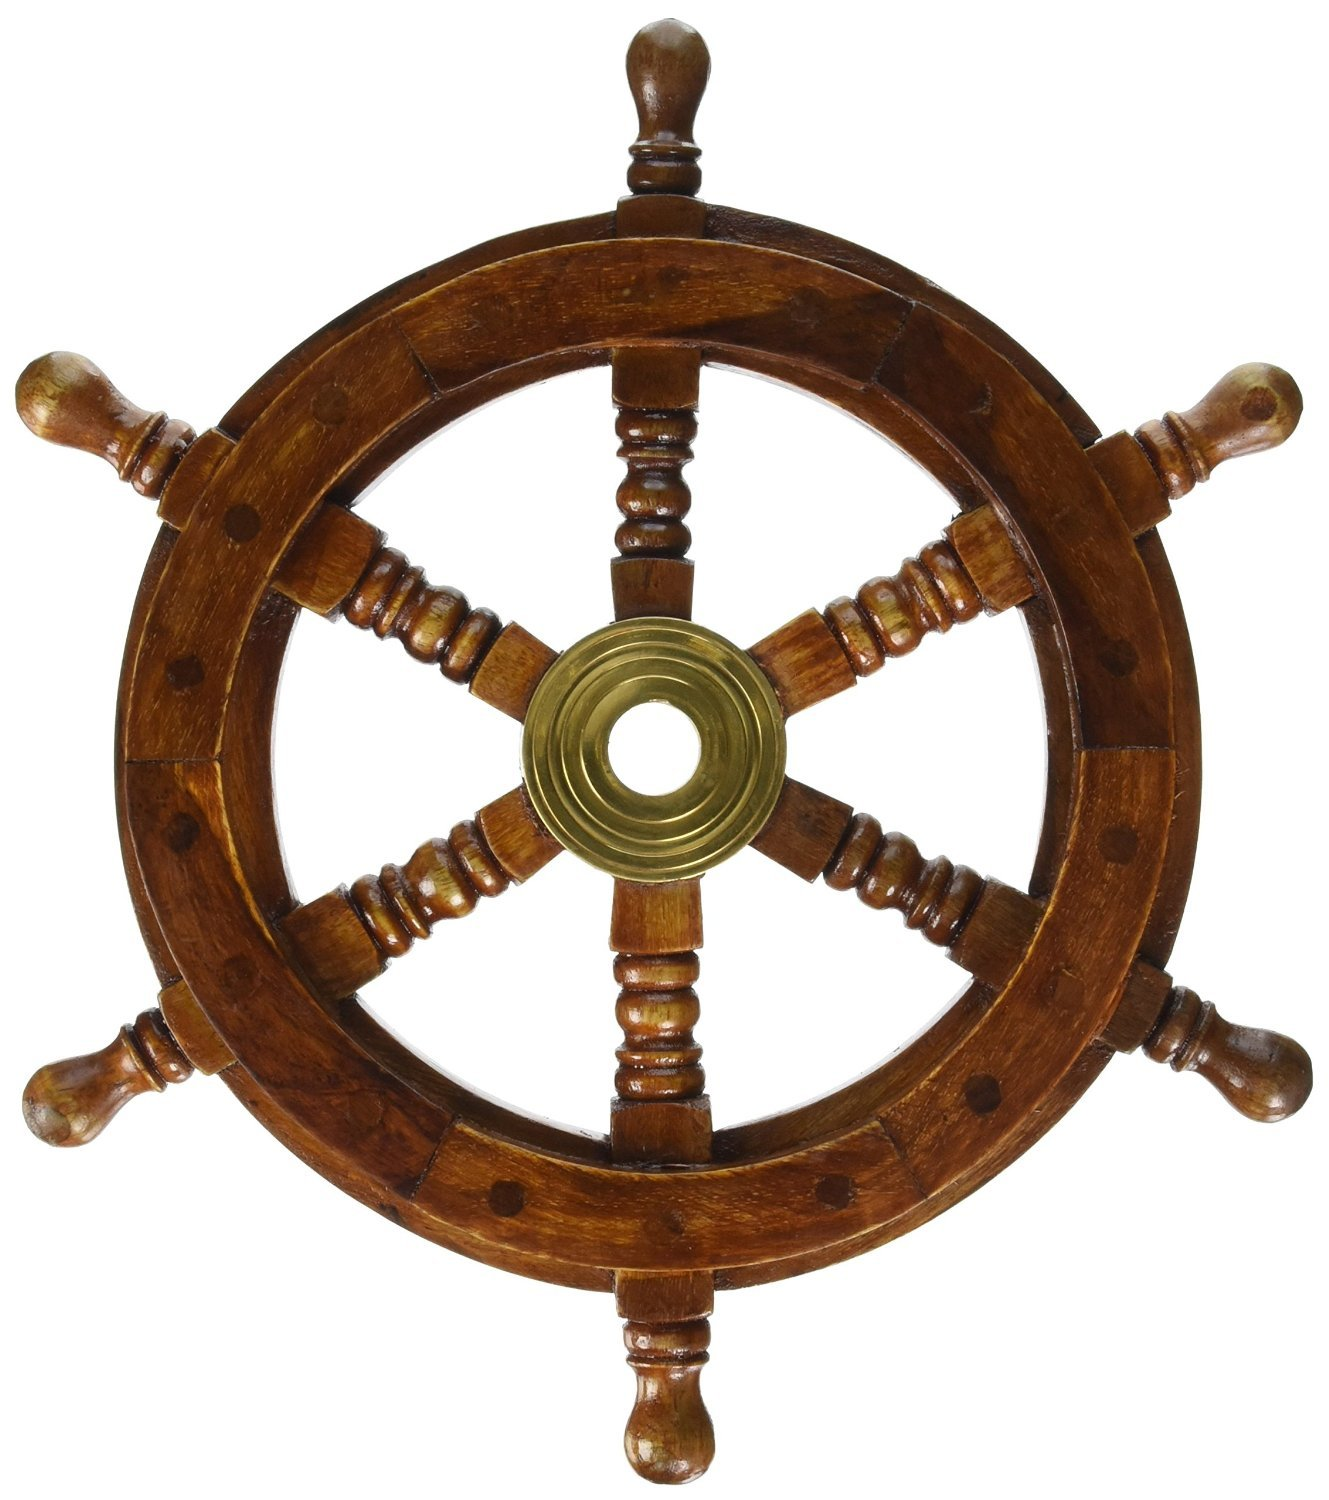 Pirate Ship Wheel Nautical Decor